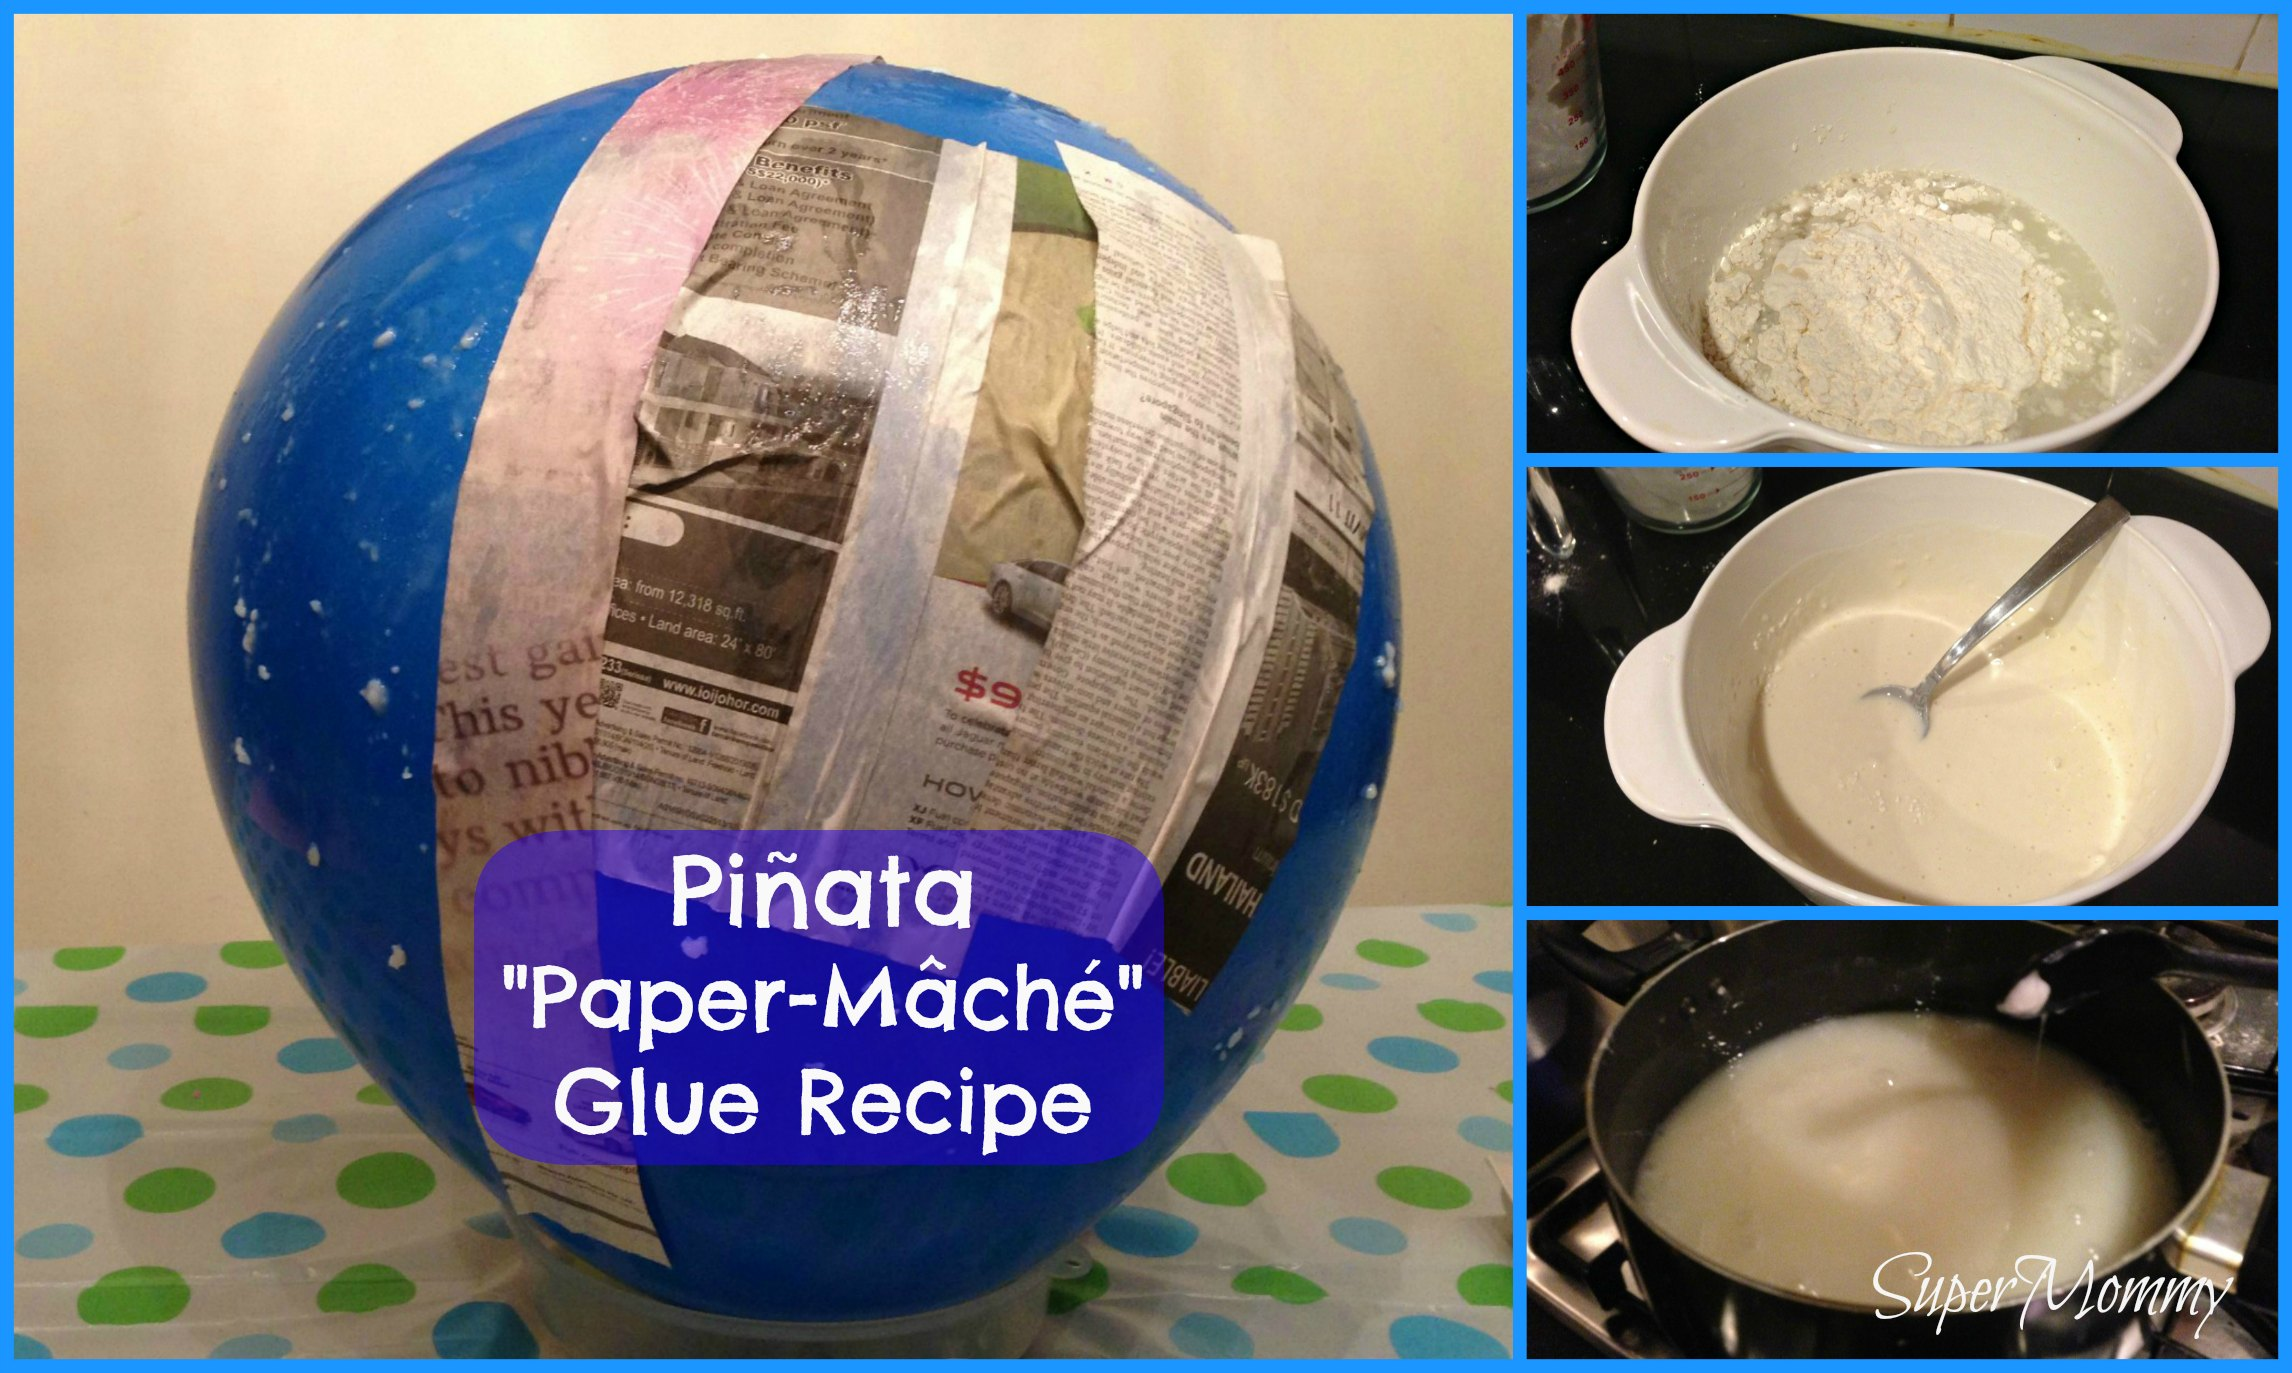 Easy Paper Mache Recipe http://www.supermommy.com.sg/pinata-paper-mache-glue-paste-recipe/